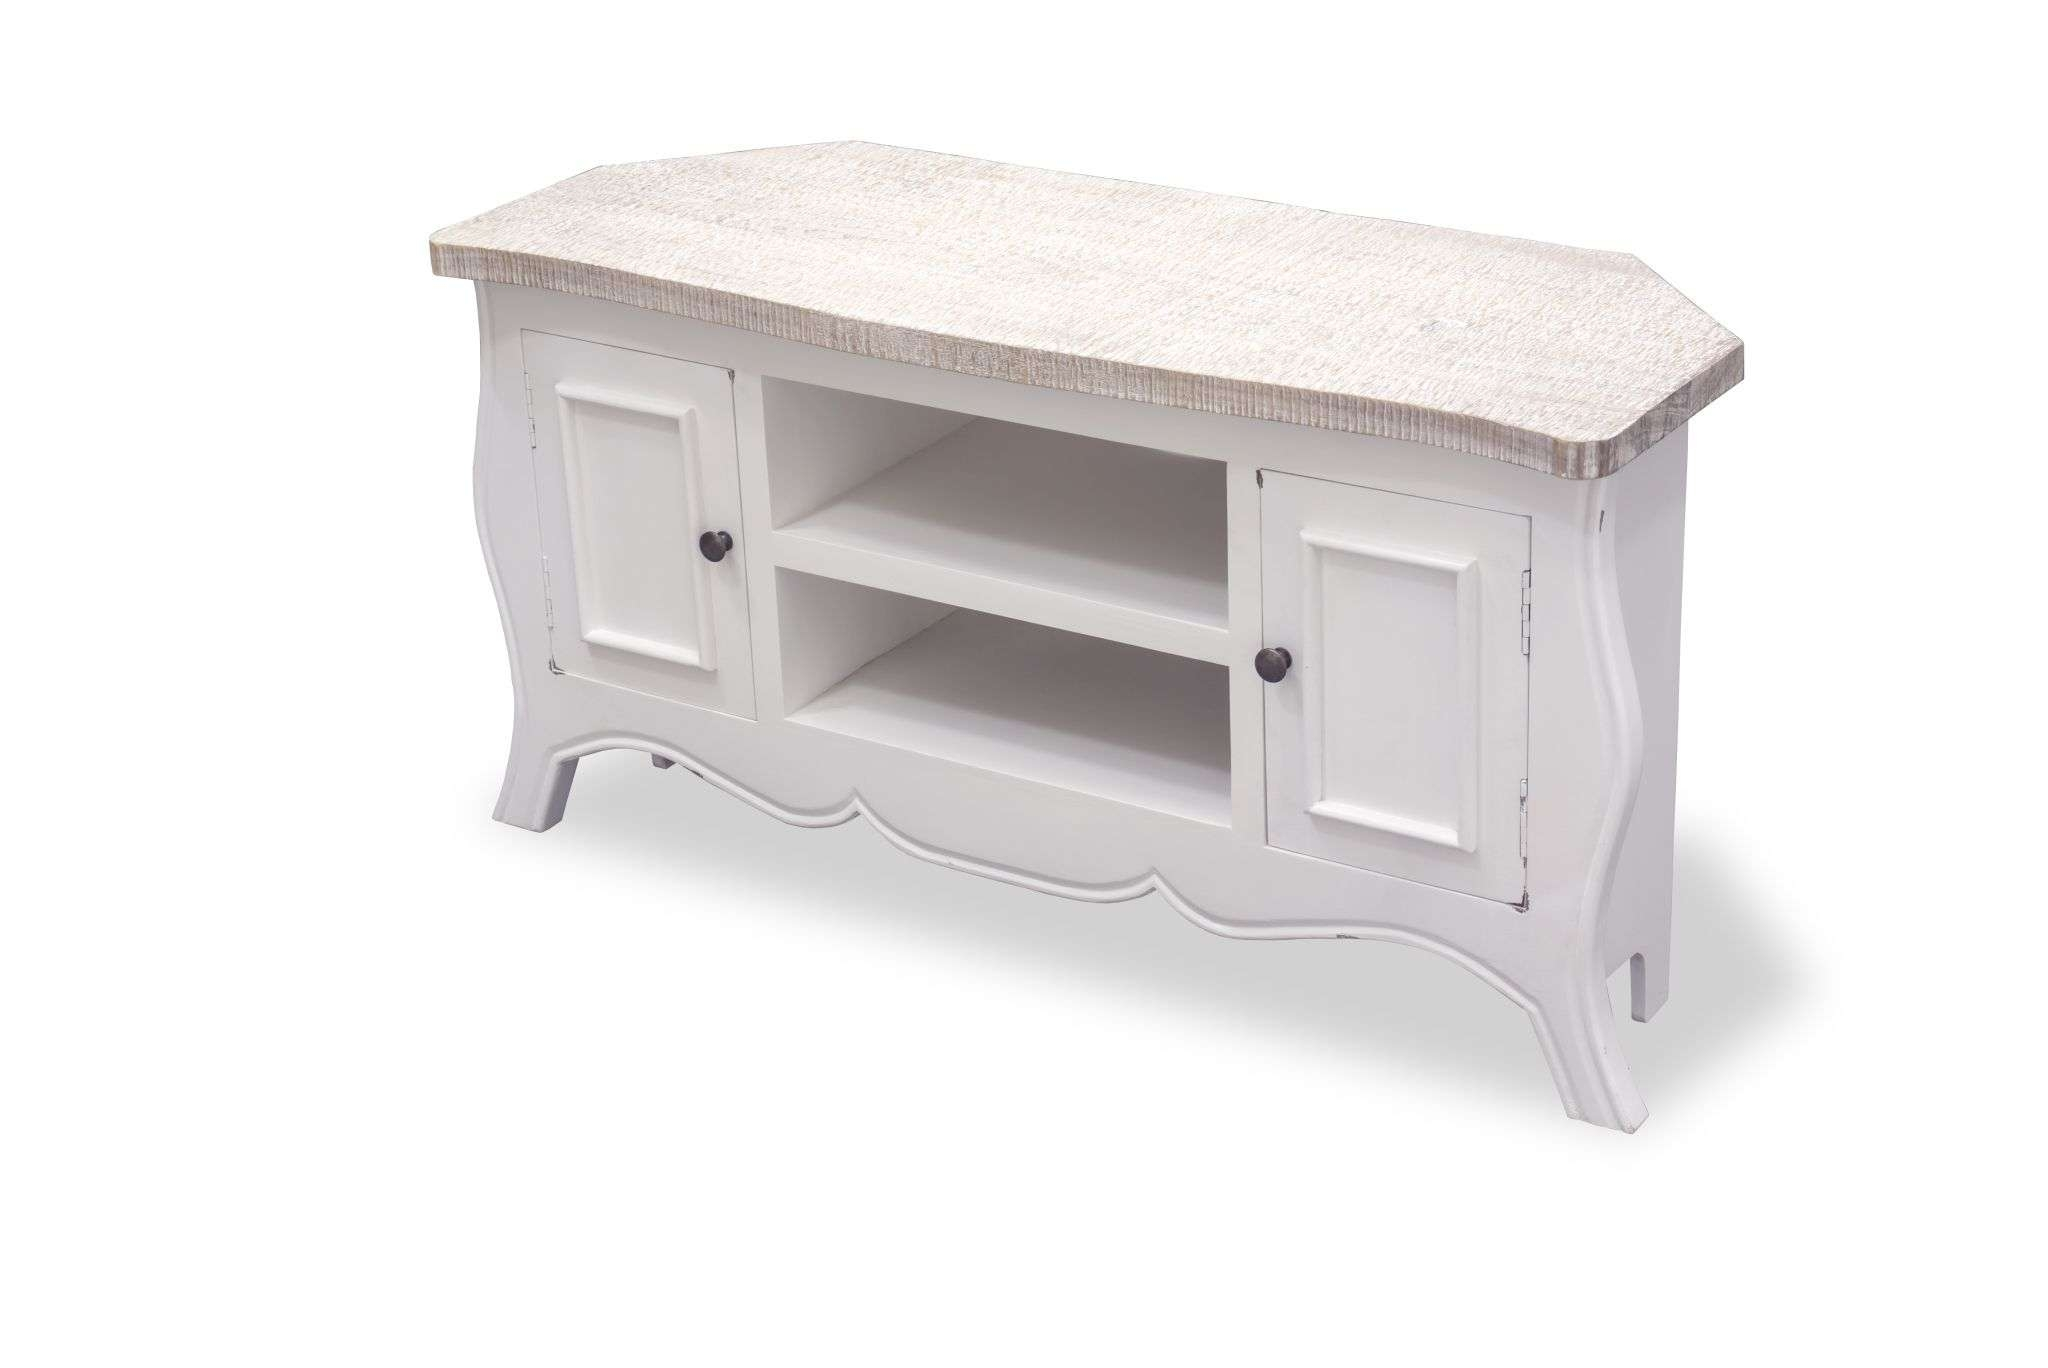 Painted Cottonwood Shabby Chic Corner Tv Cabinet 45570 P (2048 For White Corner Tv Cabinets (View 9 of 20)